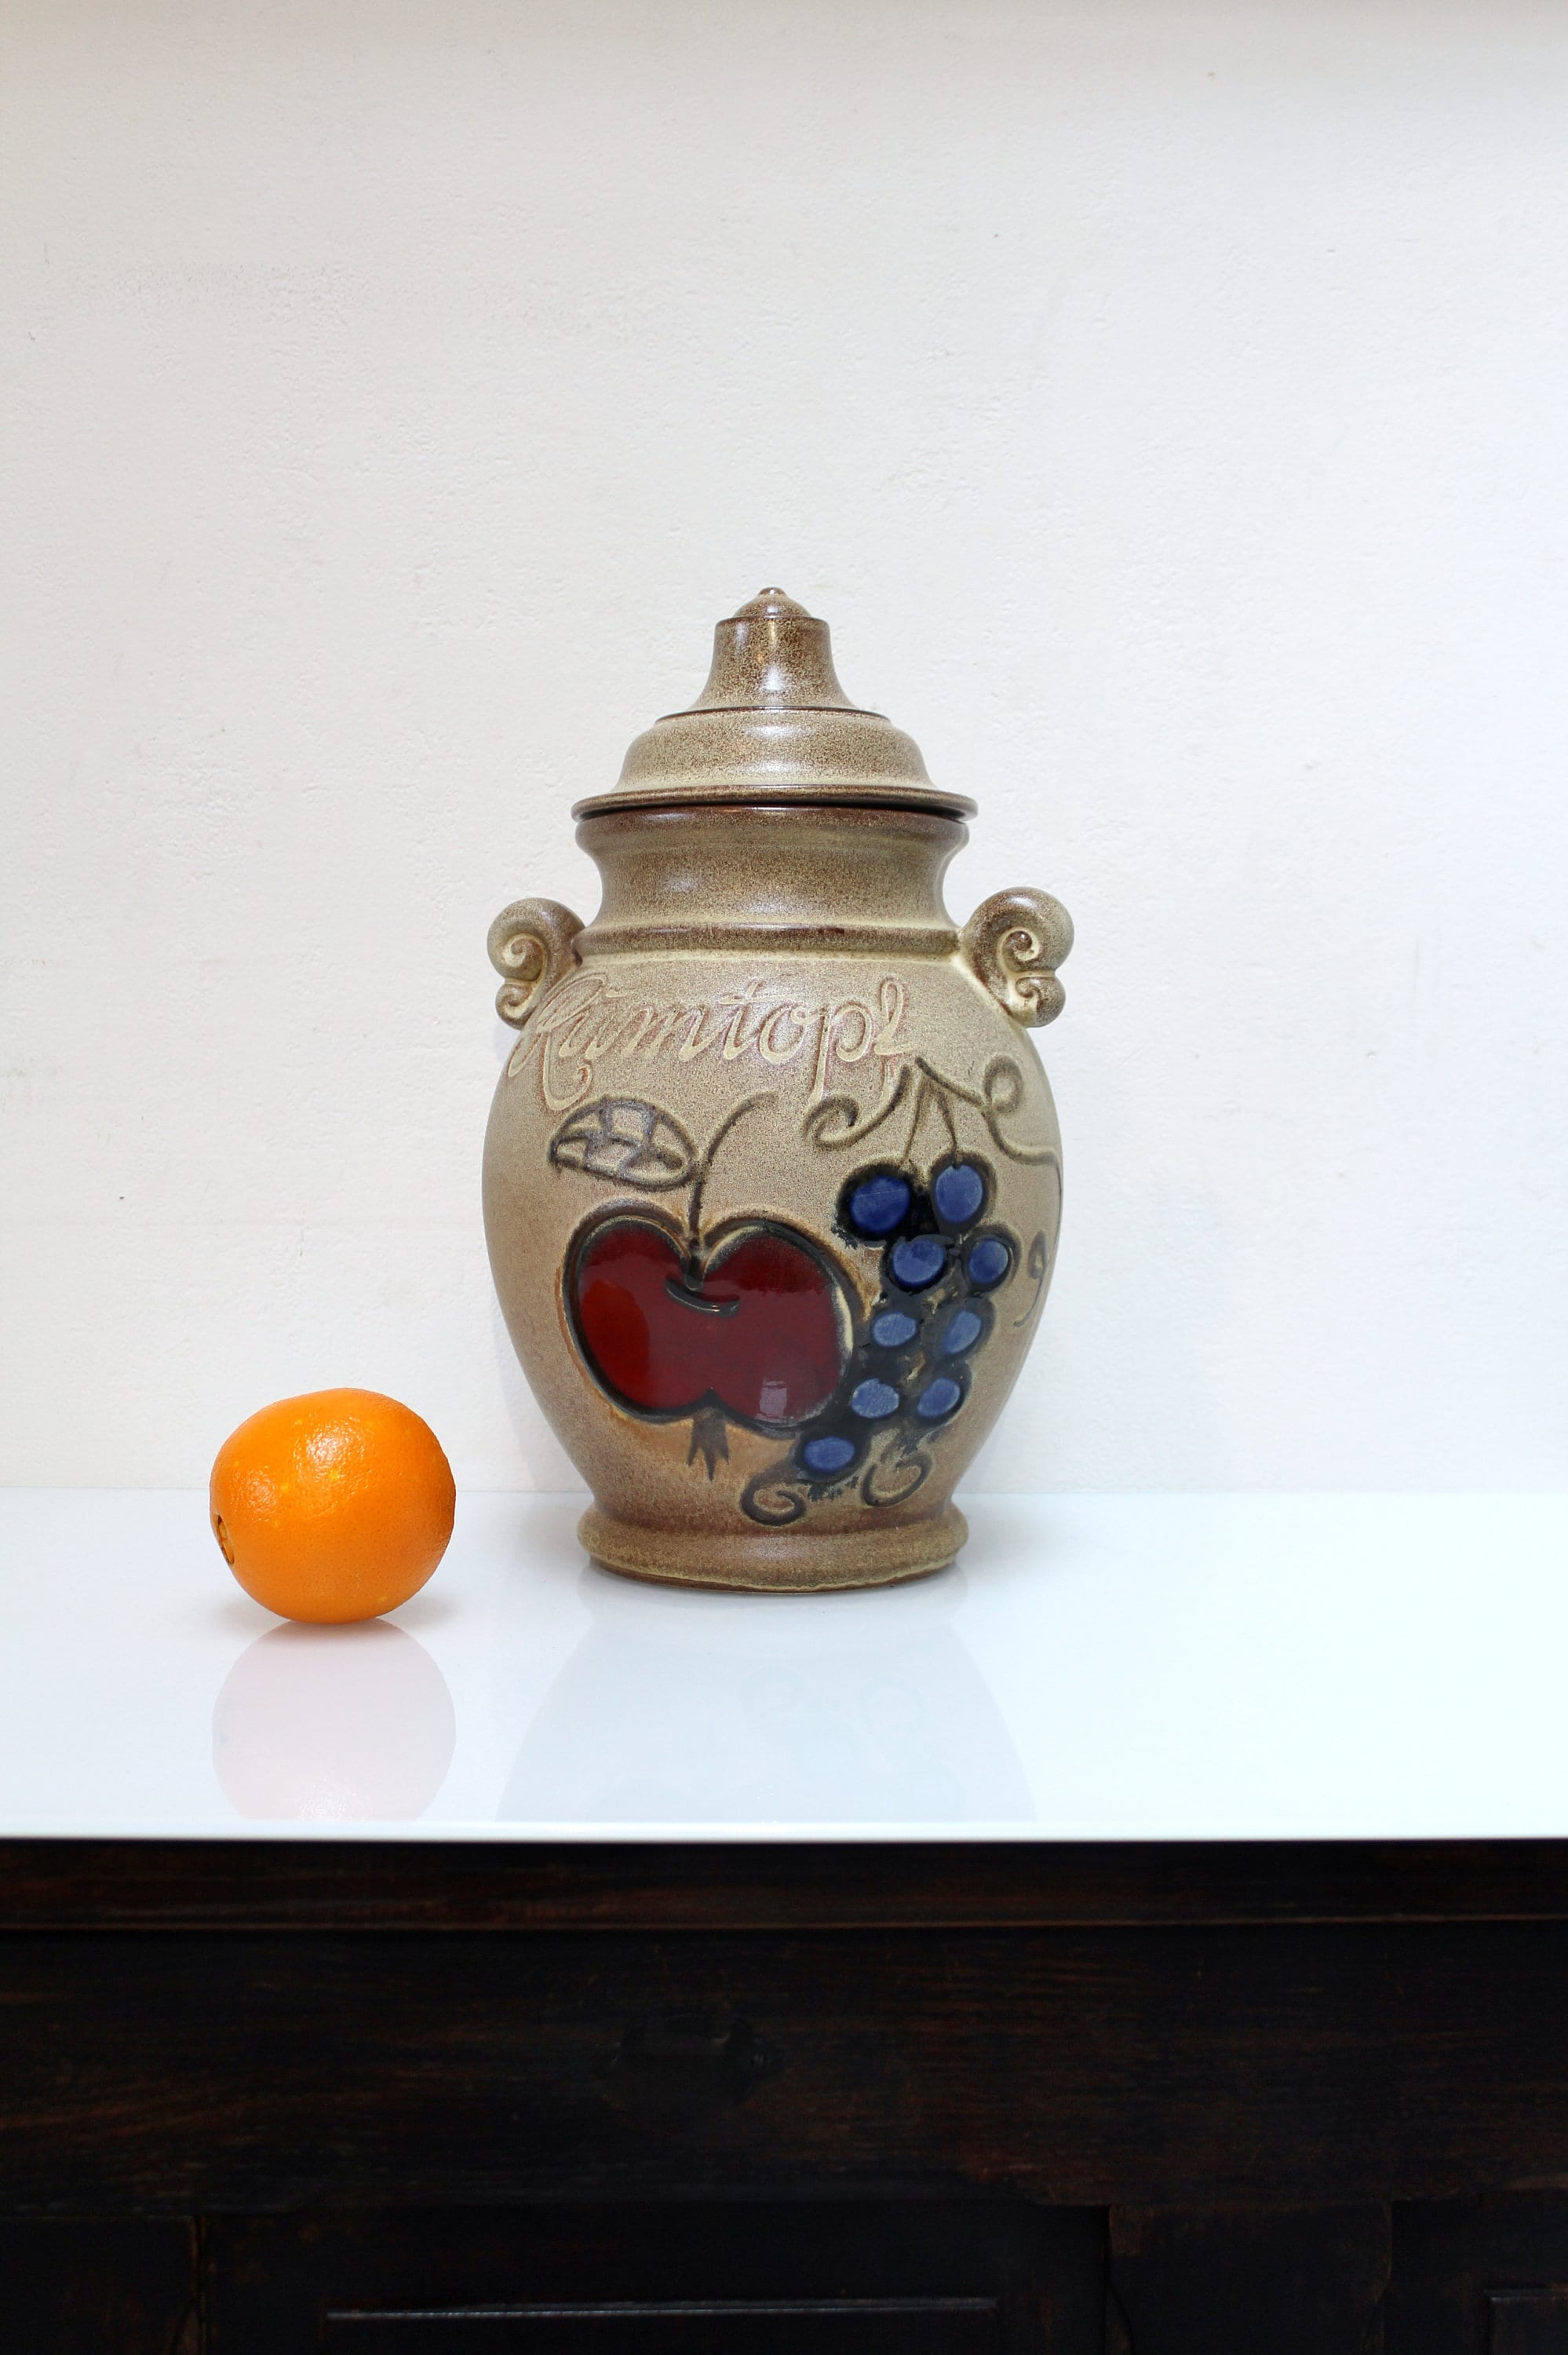 Storage 70's Rumtopf Century ModernRetro Vintage With By Jar KeramikWest Art LidMid Germany 36 826 Scheurich Kitchen PotteryCeramic A34R5jL